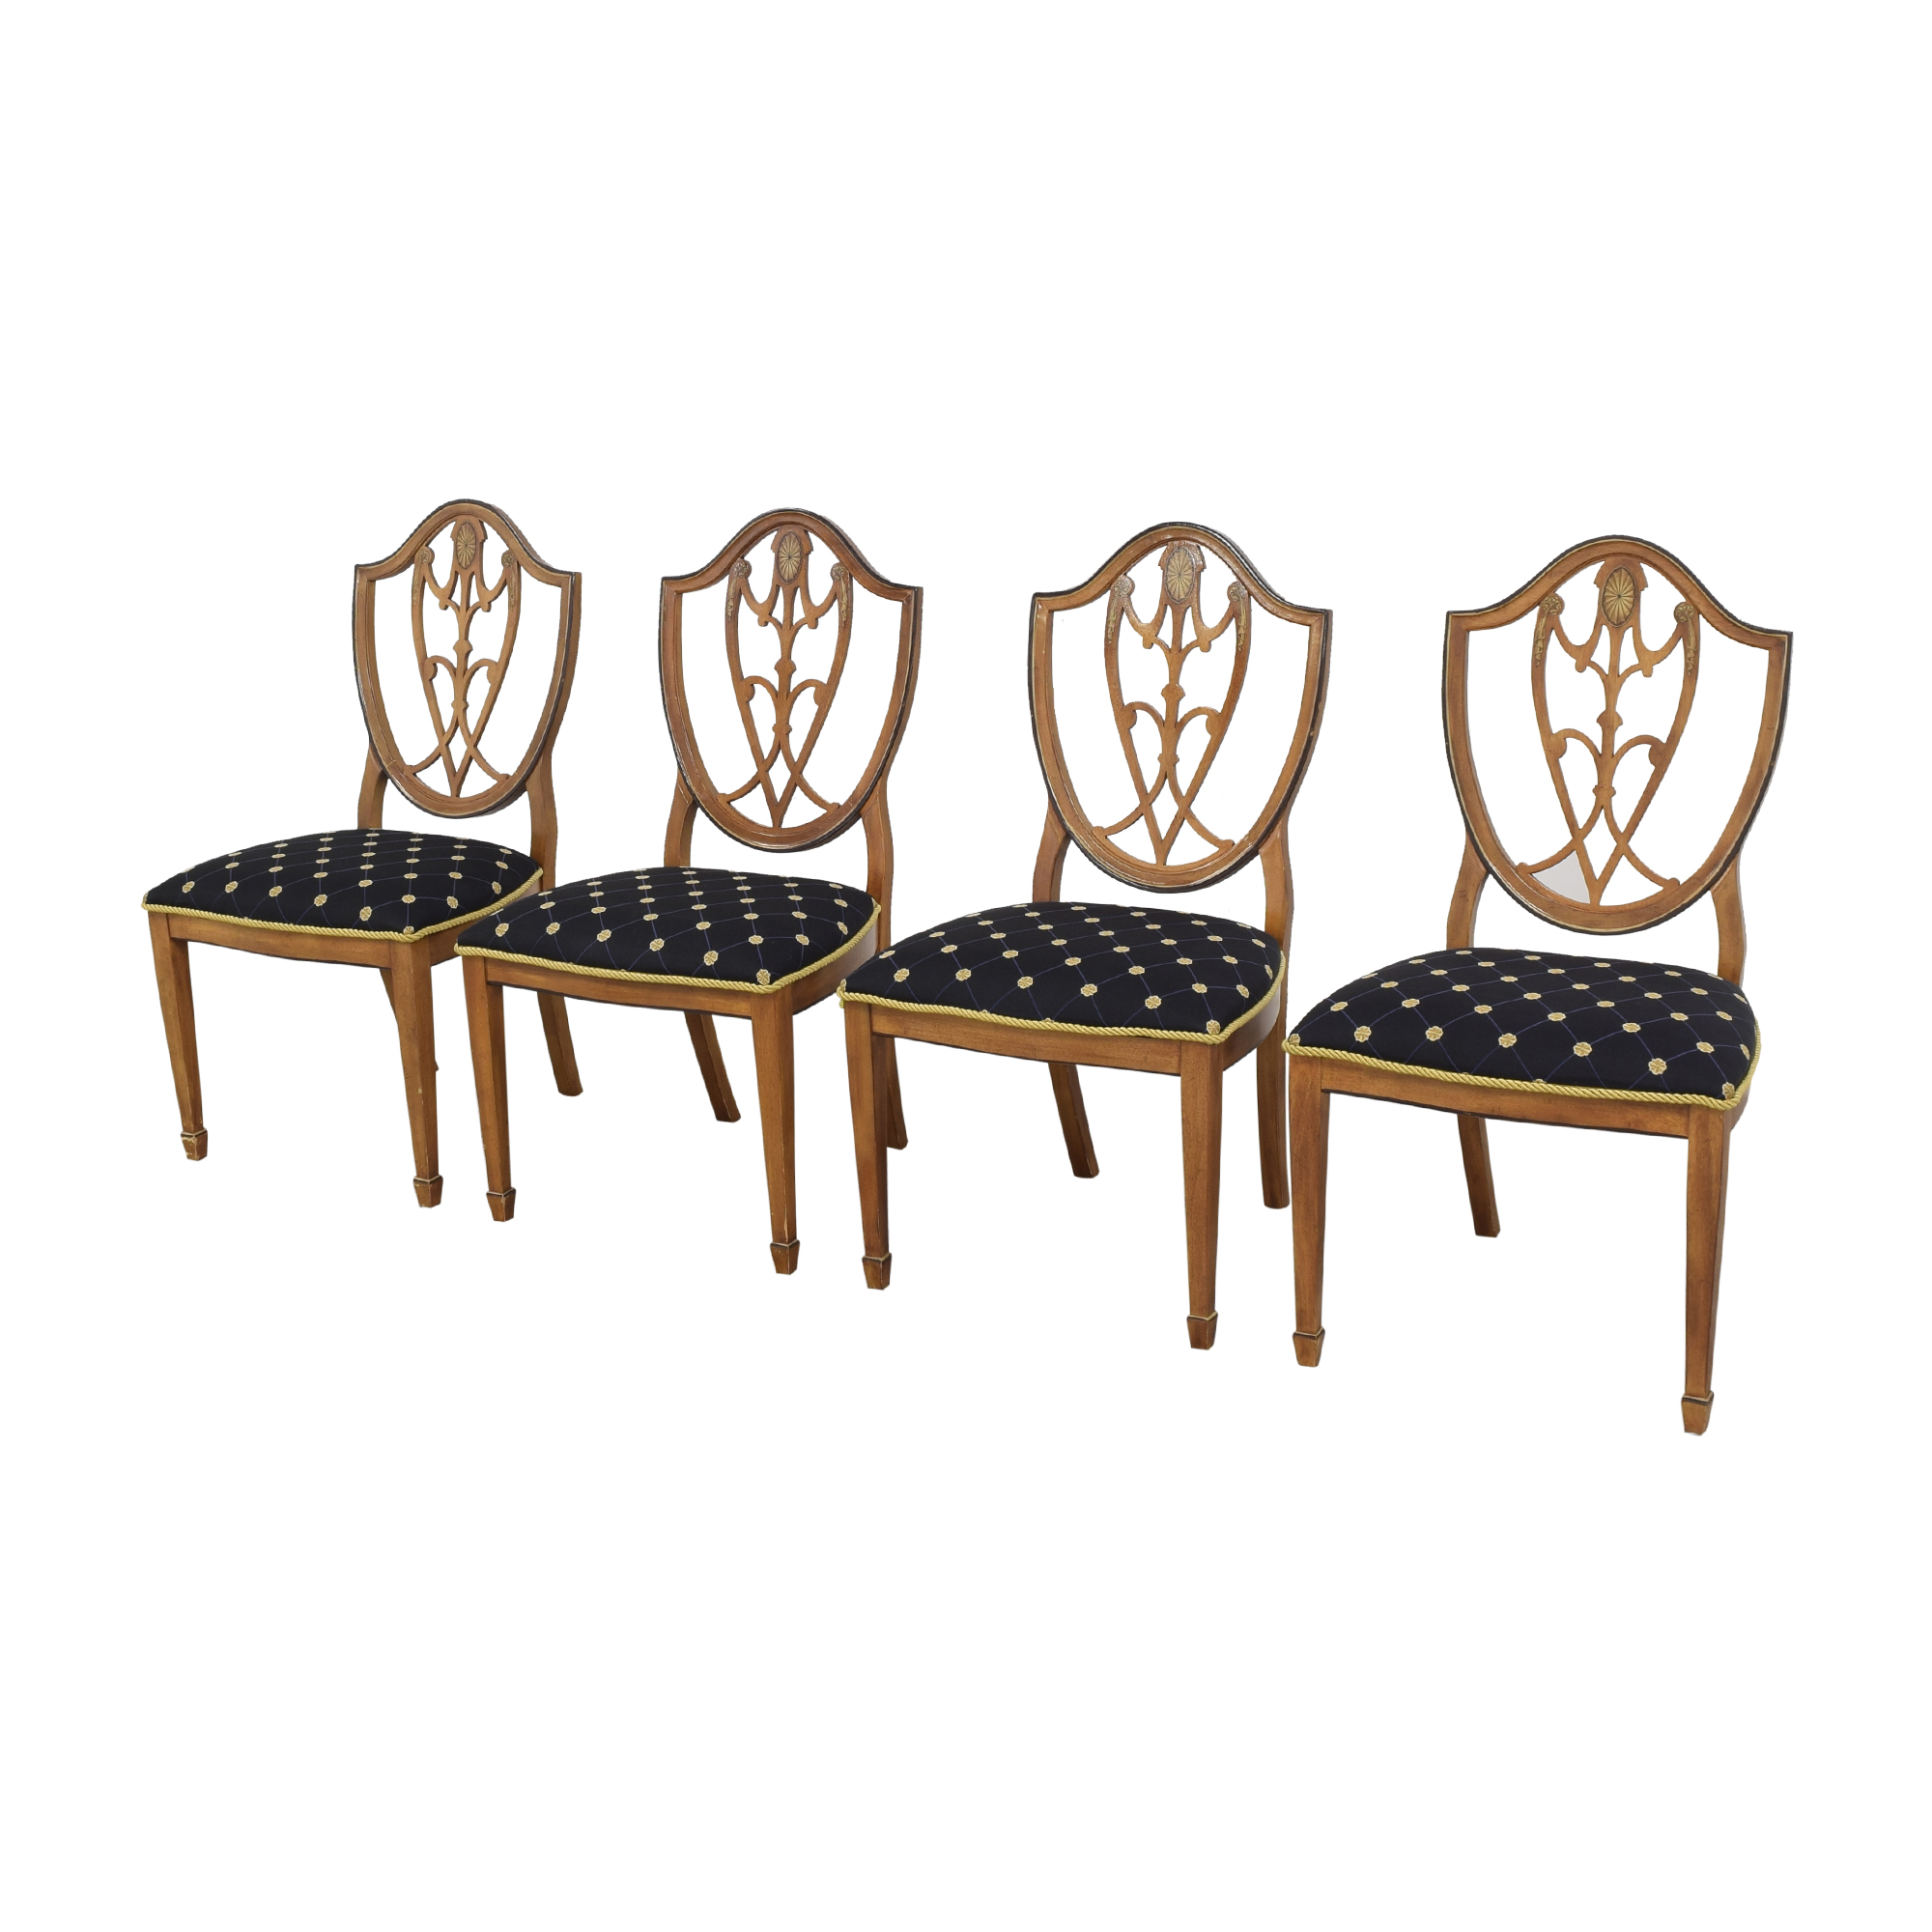 buy Drexel Upholstered Dining Chairs Drexel Dining Chairs